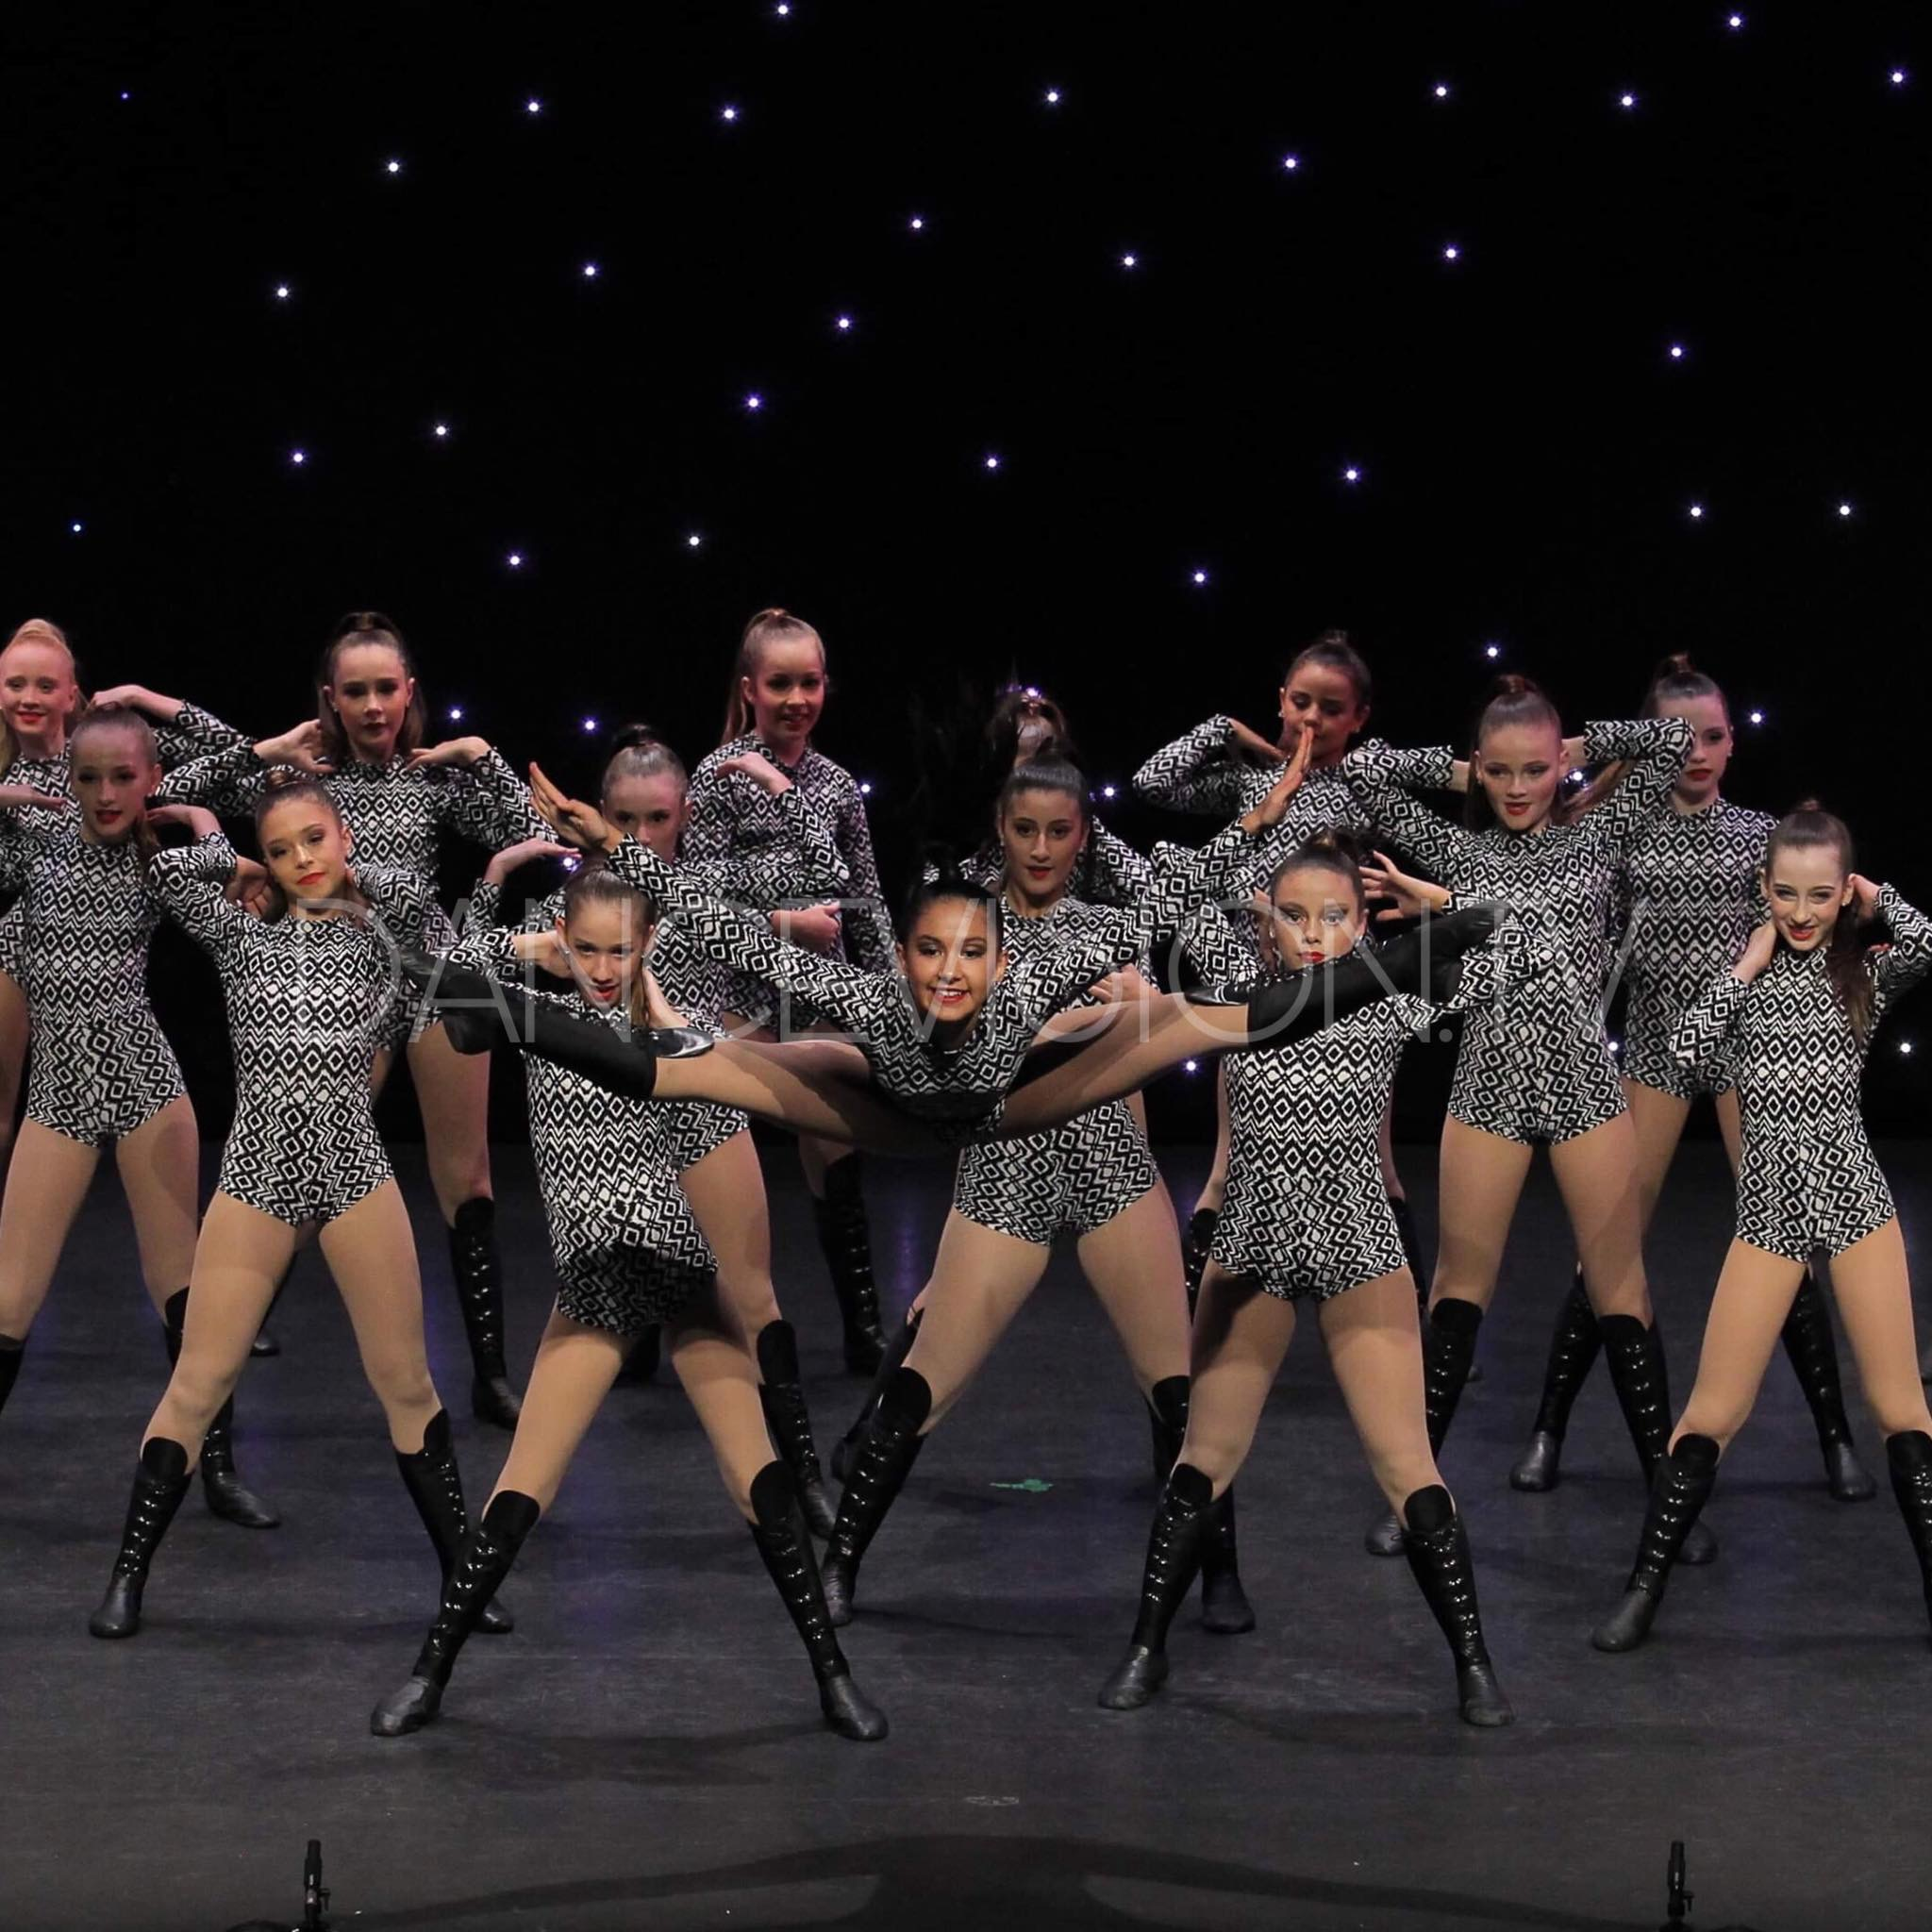 Commercial Jazz Dance Team at Dance Eisteddfod Competition